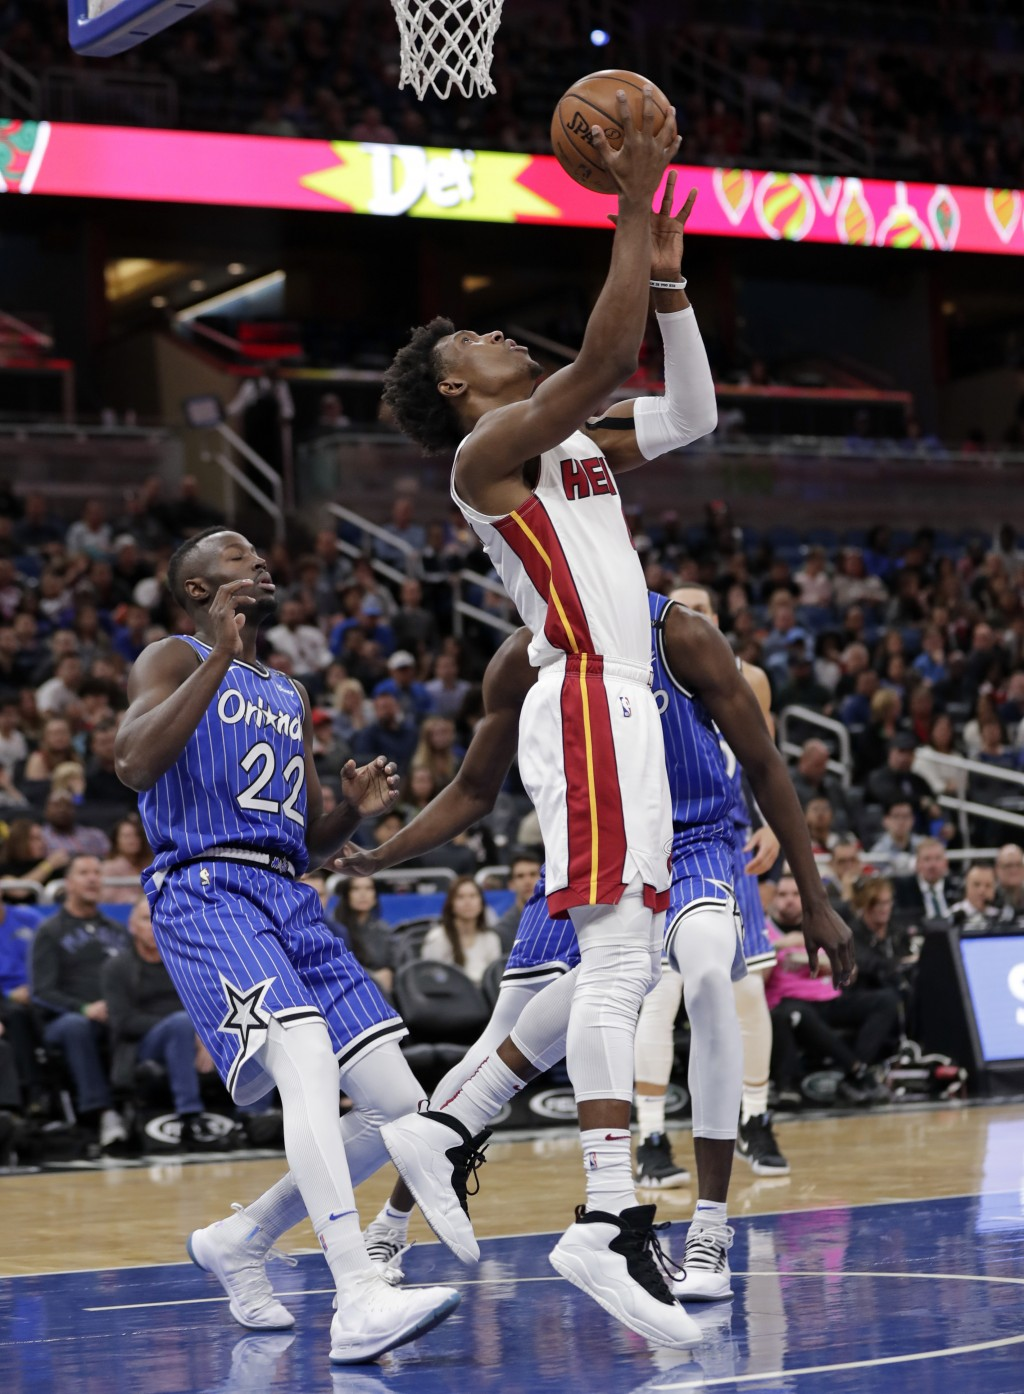 Miami Heat's Josh Richardson, front right, takes a shot in front of Orlando Magic's Jerian Grant (22) during the first half of an NBA basketball game,